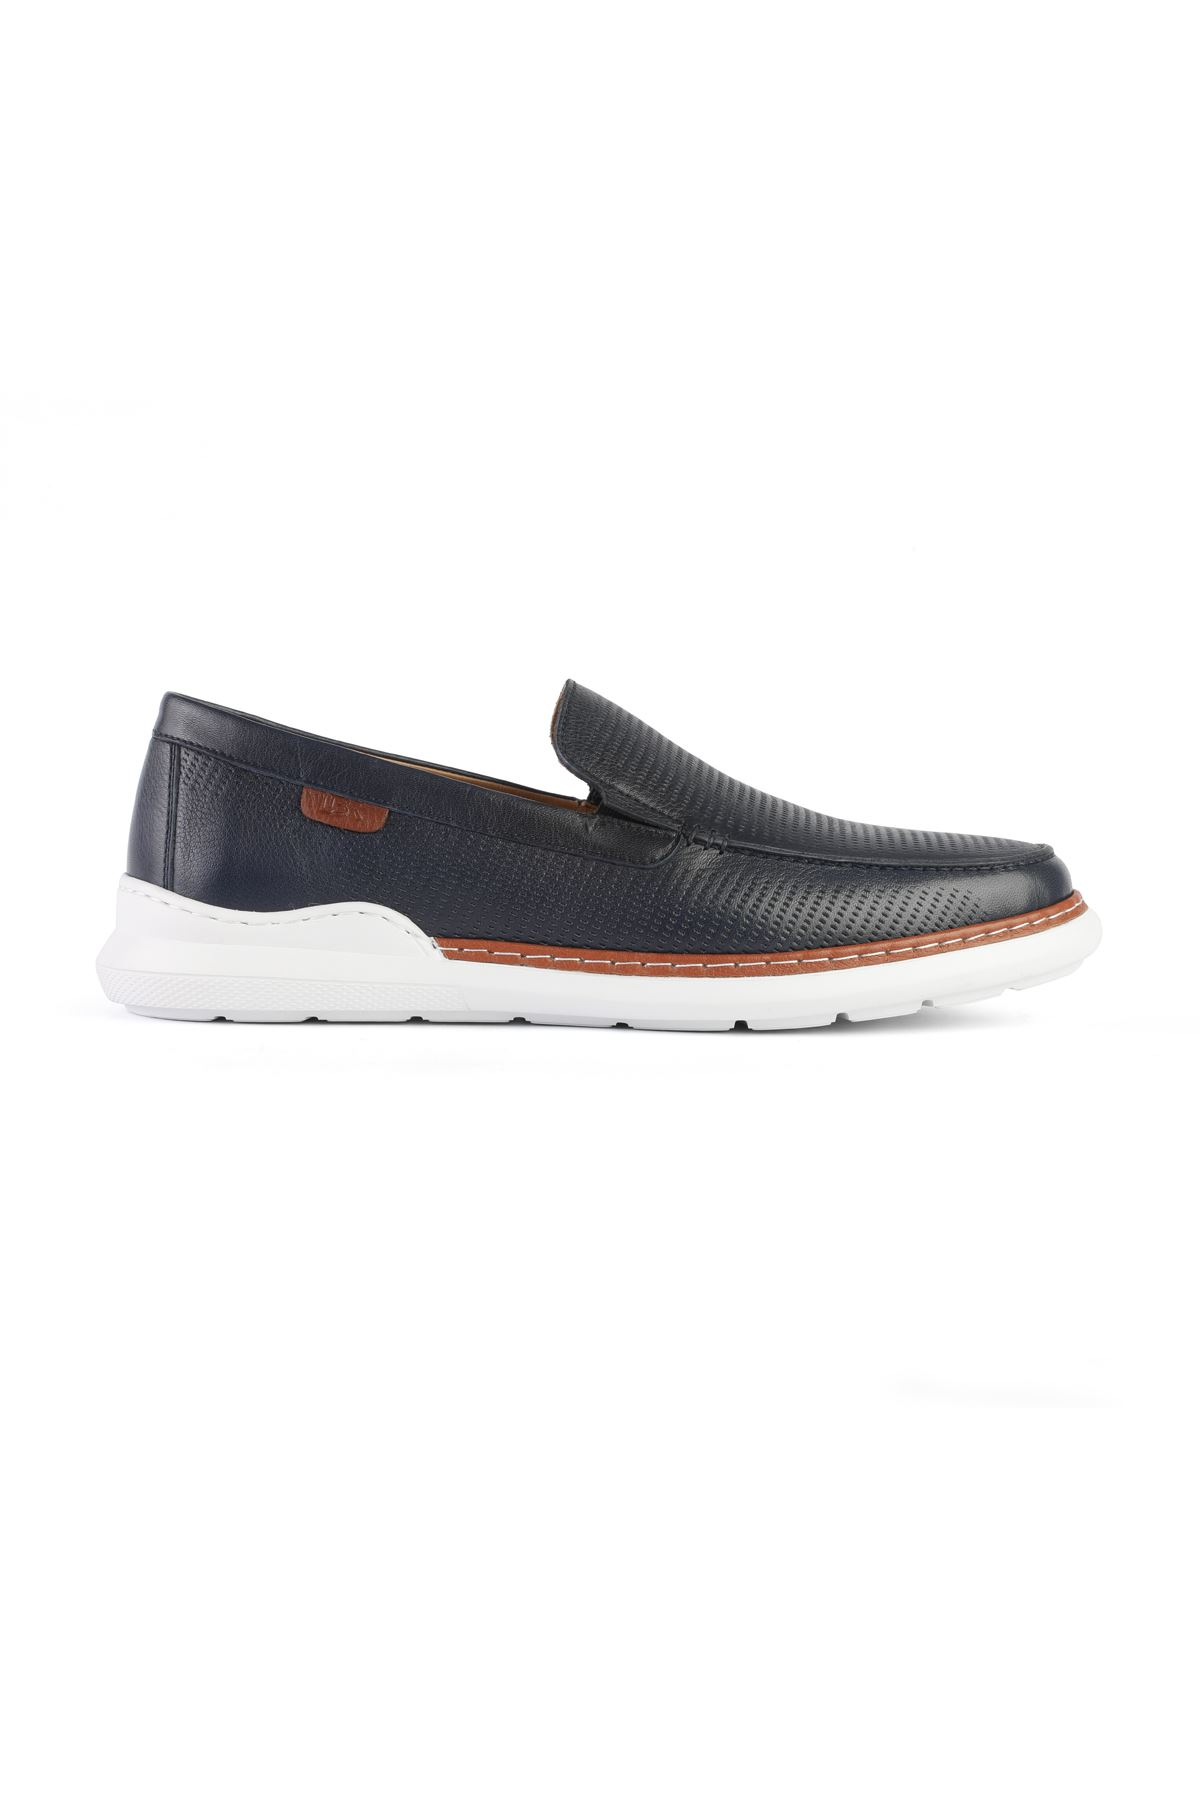 Libero 3332 Navy Blue Loafer Shoes